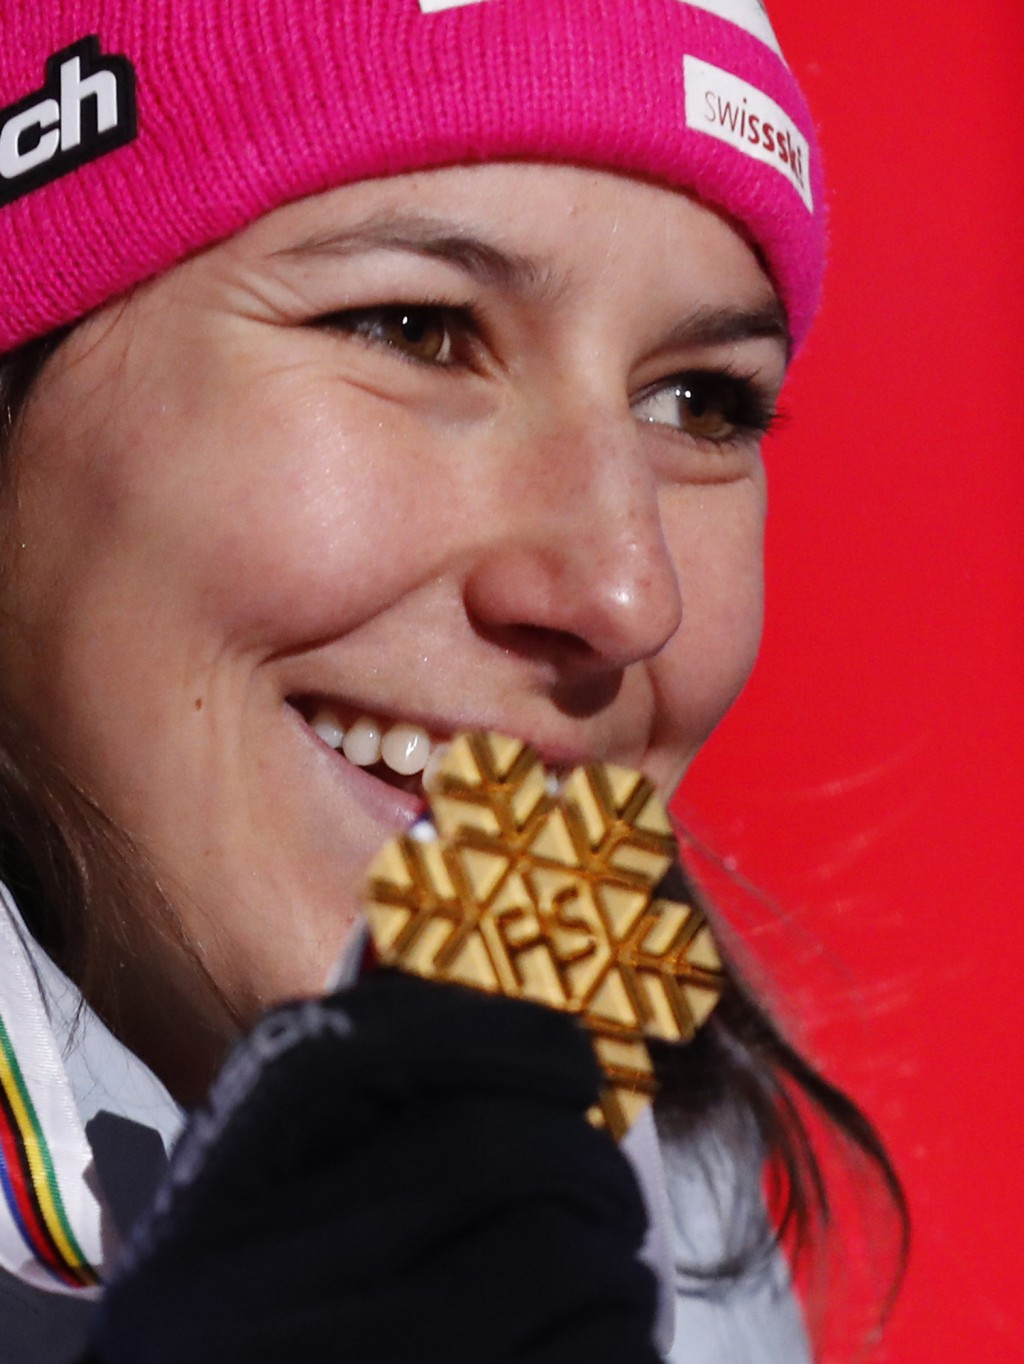 Switzerland's Wendy Holdener poses with her gold medal during the medal ceremony for the women's combined race, at the alpine ski World Championships ...